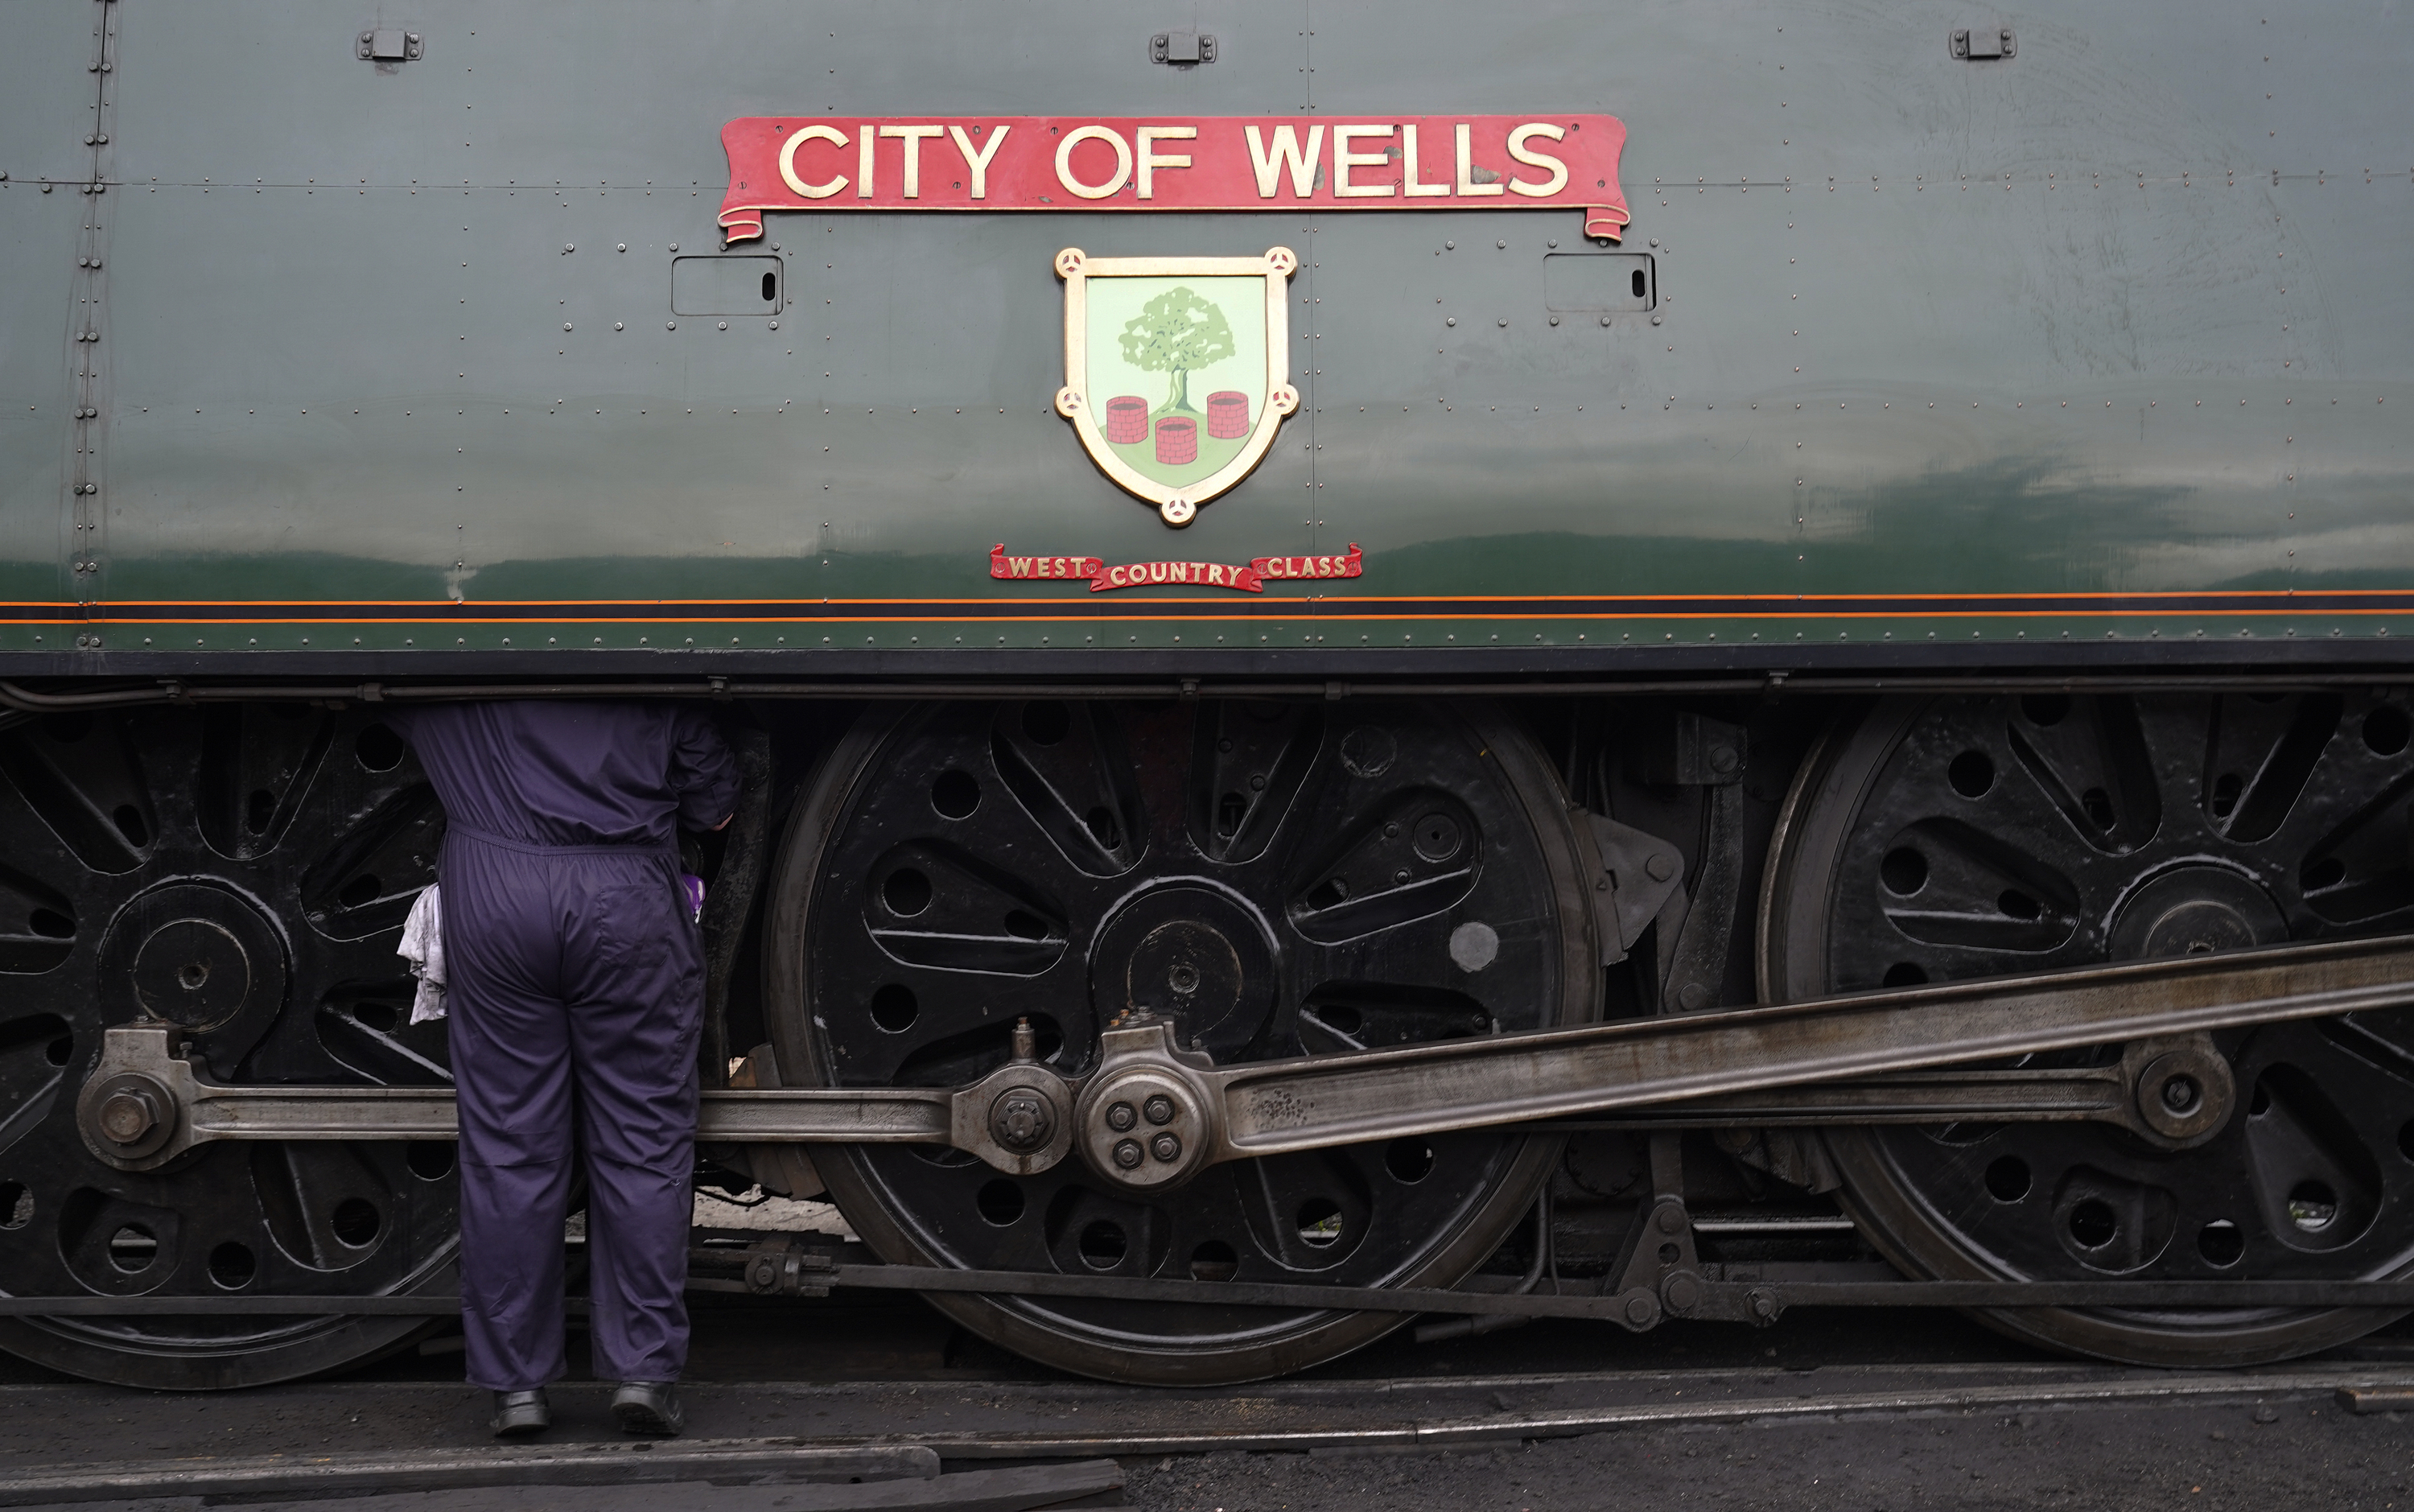 <p>Volunteer Dave Driver works on the steam locomotive 34092 'City of Wells' at Ropley yard on the Mid Hants Railway, also known as the Watercress line, a 19th-century steam train heritage line in Hampshire, ahead of their Autumn Steam Gala which runs from October 1-3. The City of Wells is one of a number of guest locomotives for this year's Autumn Steam Gala, which in partnership with the Somerset and Dorset Railway trust, is recreating the Somerset and Dorset railway from the 1950's and 60's. Picture date: Thursday September 30, 2021.</p>